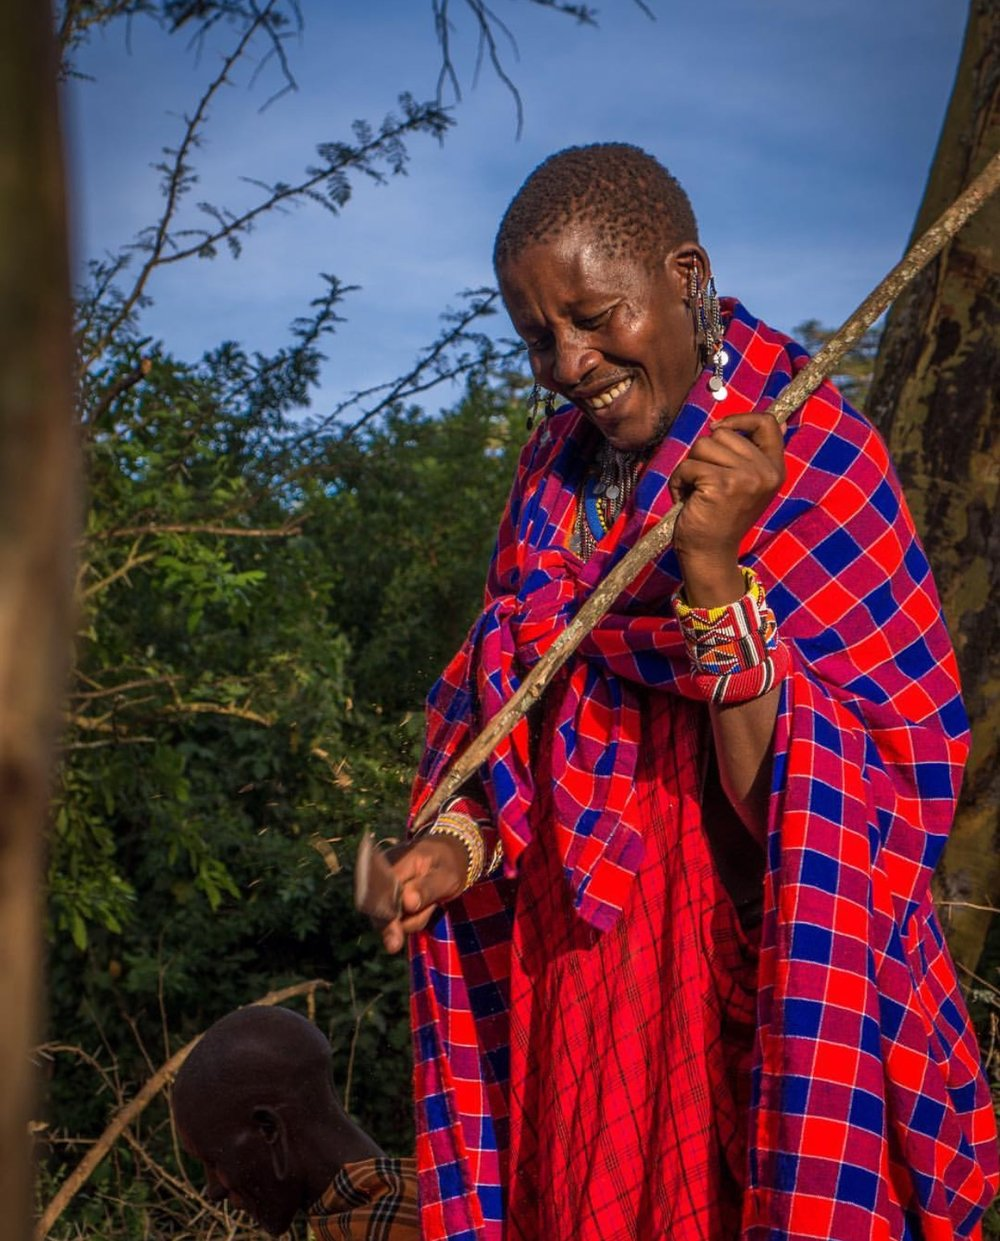 Salaton Ole Ntutu, the Maasai warrior chief of Maji Moto in Kenya, developed a social enterprise that allows travelers to stay with and learn from the Maasai people and their culture in a socially responsible way. Money from the tours helps fund his work to end female genital mutilation.  Photo by Shannon O'Donnell .